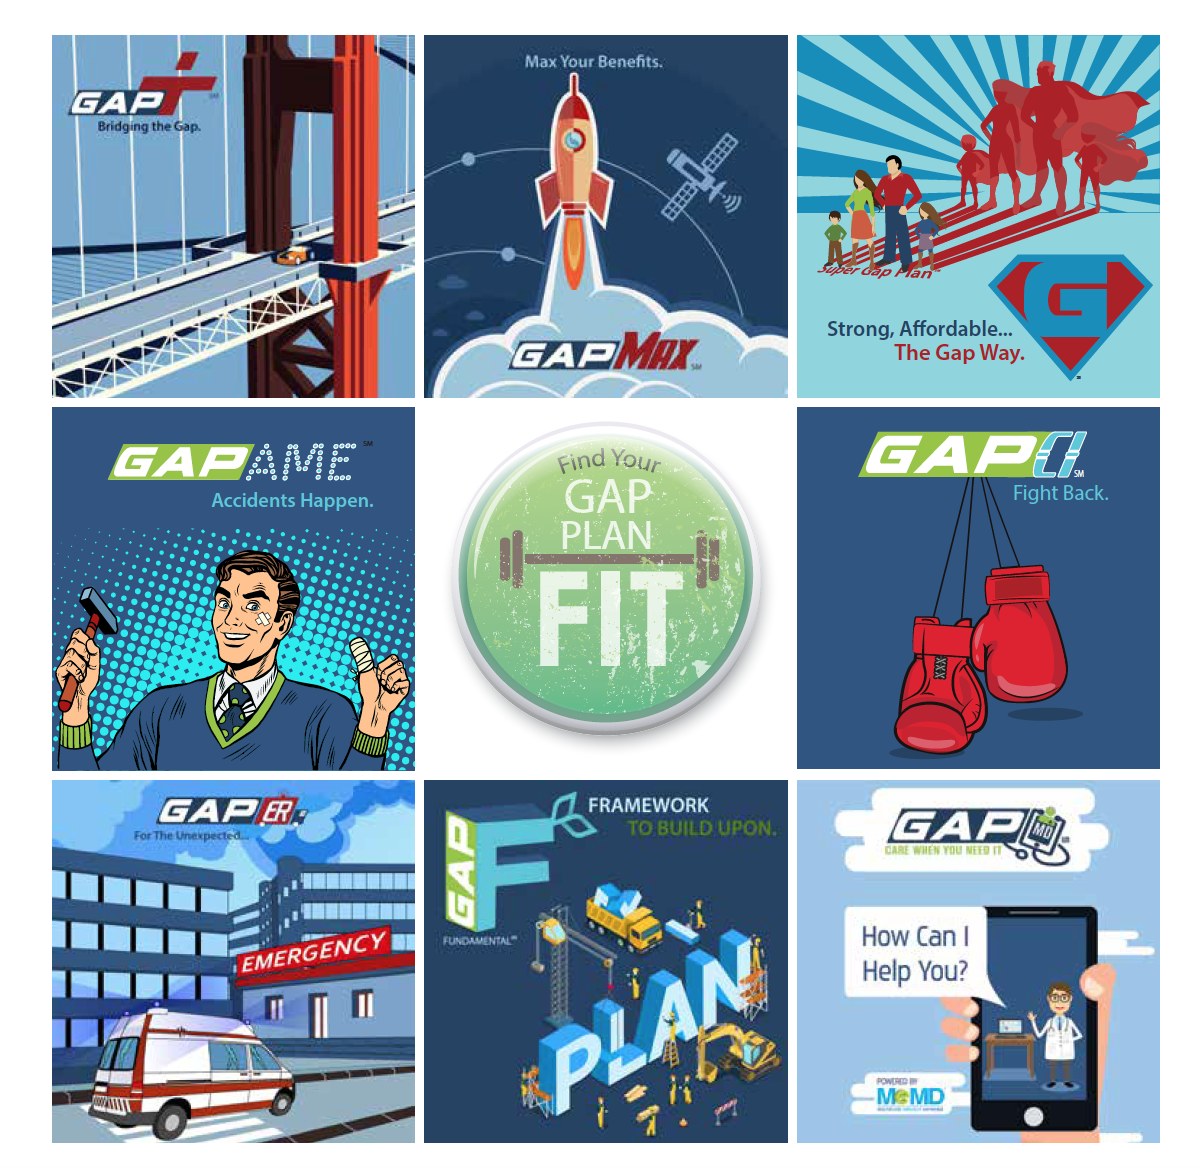 Find Your Gap Fit - this image shows you the plan options available with GAP